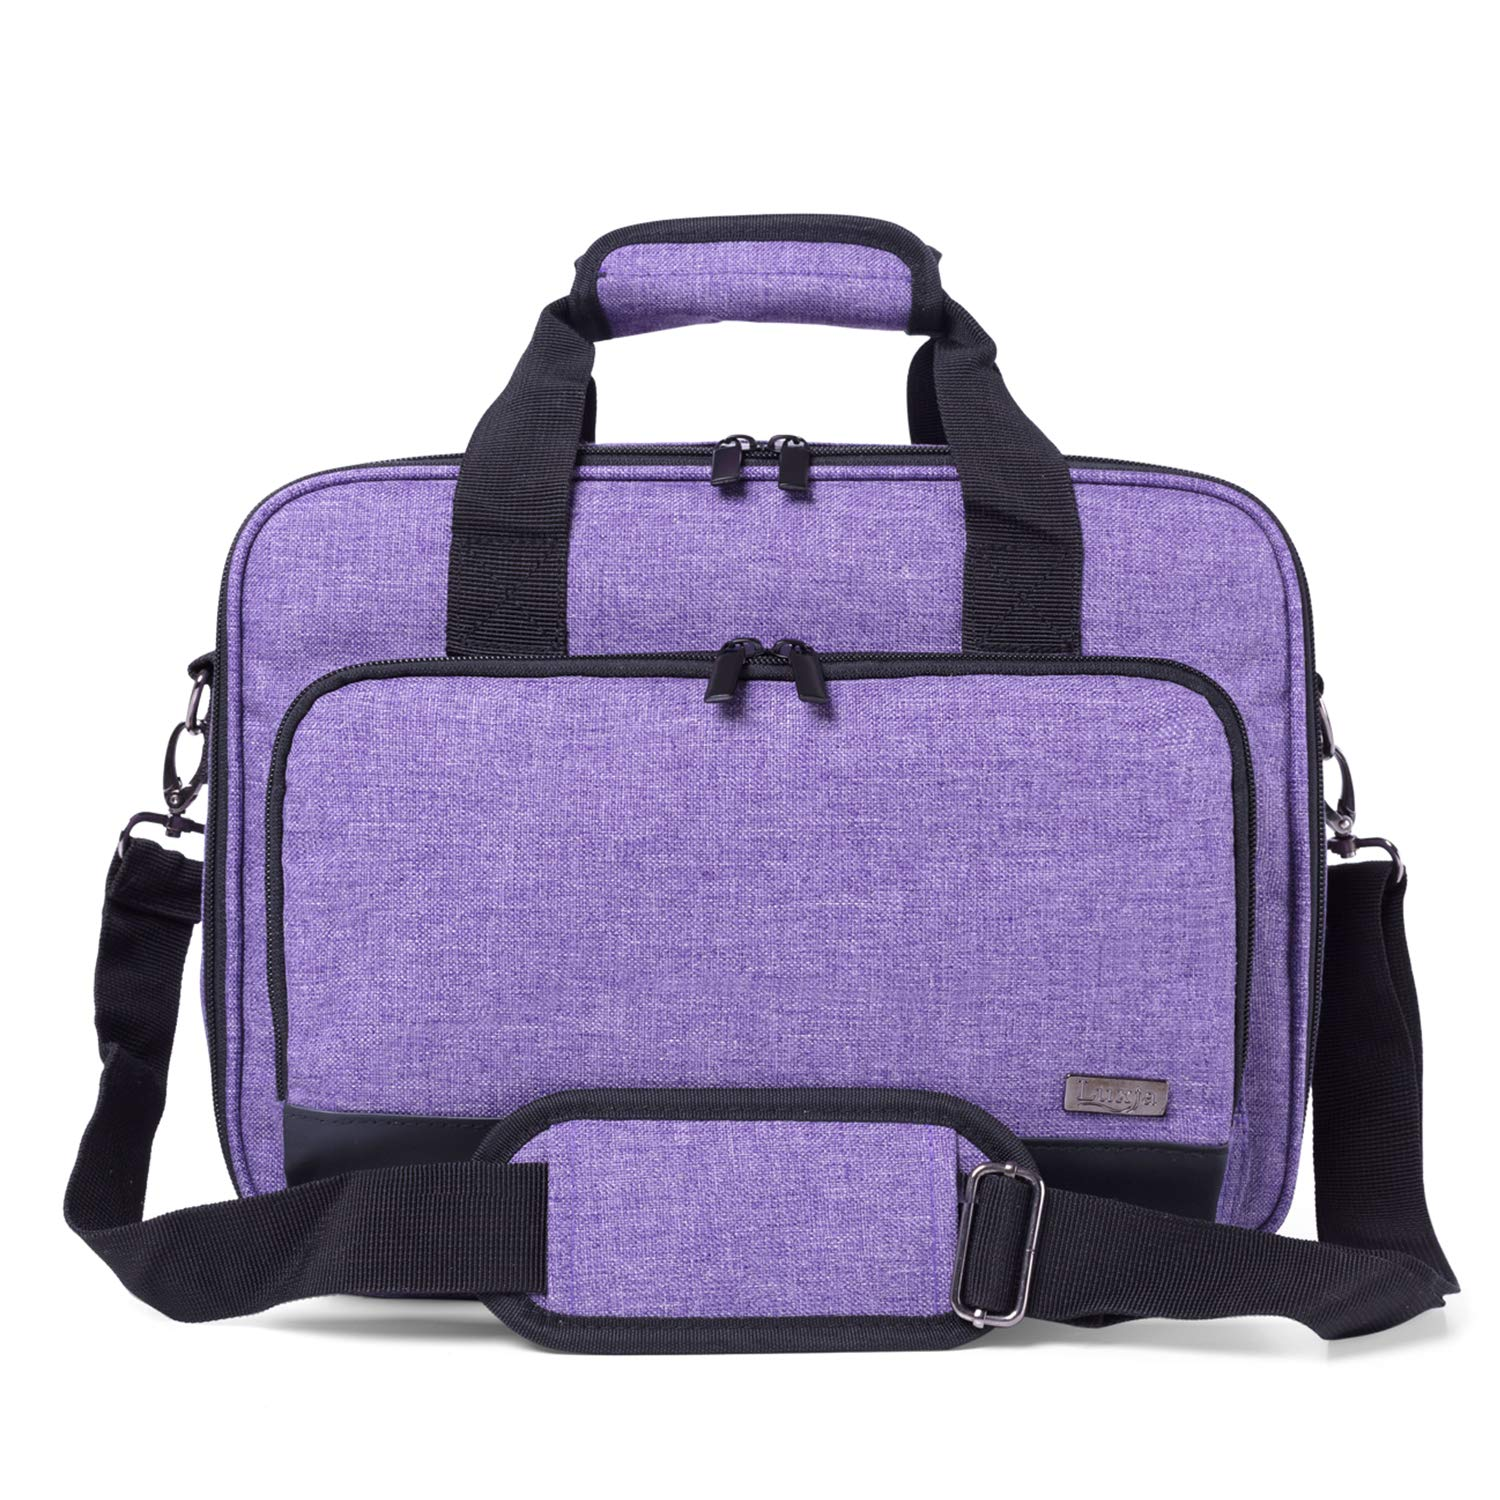 Purple Compatible with Most Major Projectors Projector Bag with Accessories Storage Pockets Luxja Projector Case